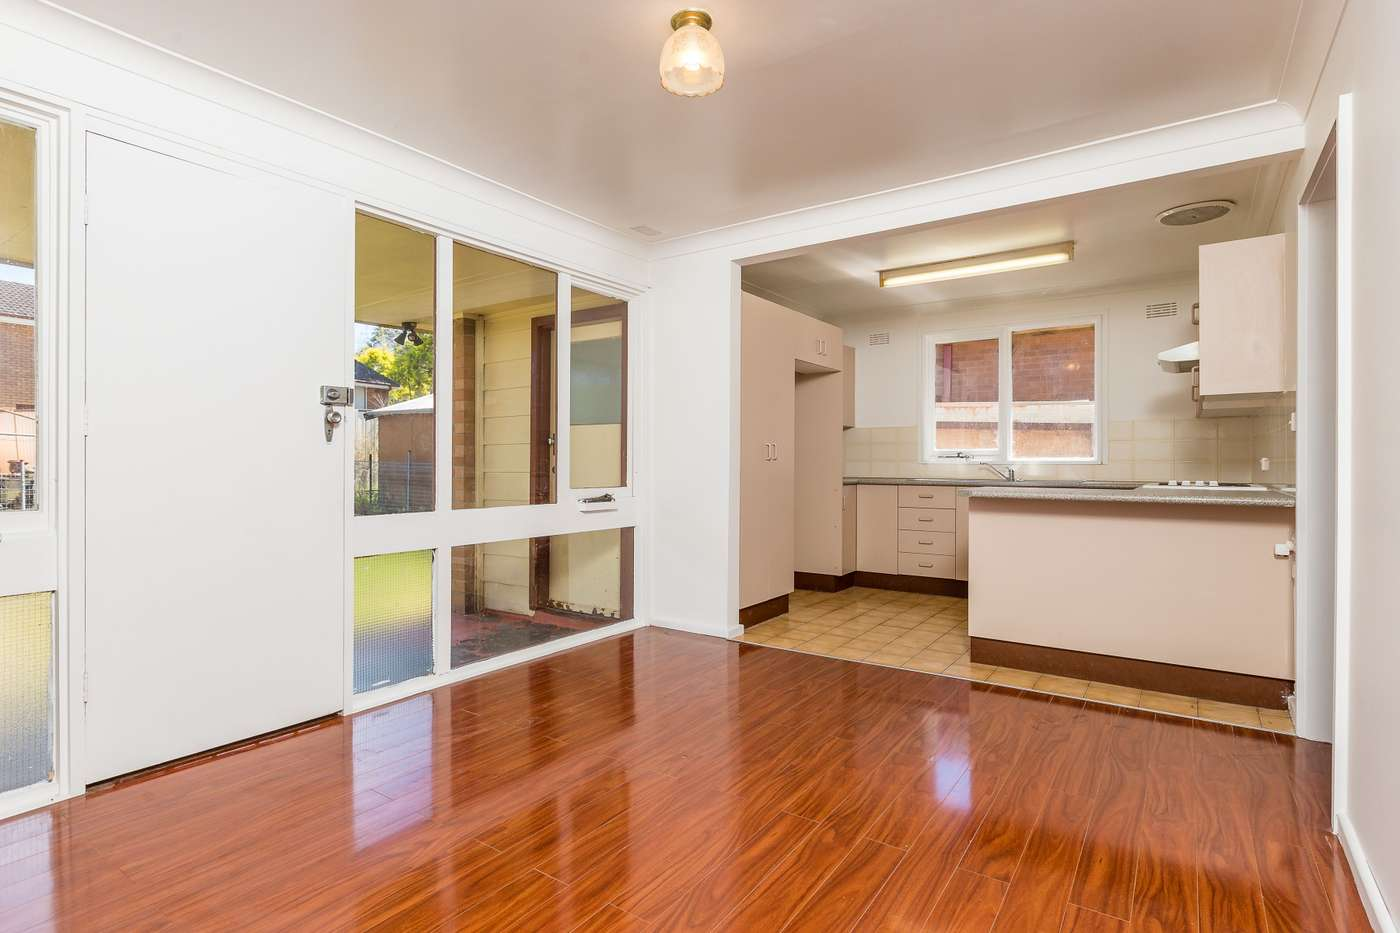 Main view of Homely house listing, 44 Adelaide, Raymond Terrace, NSW 2324